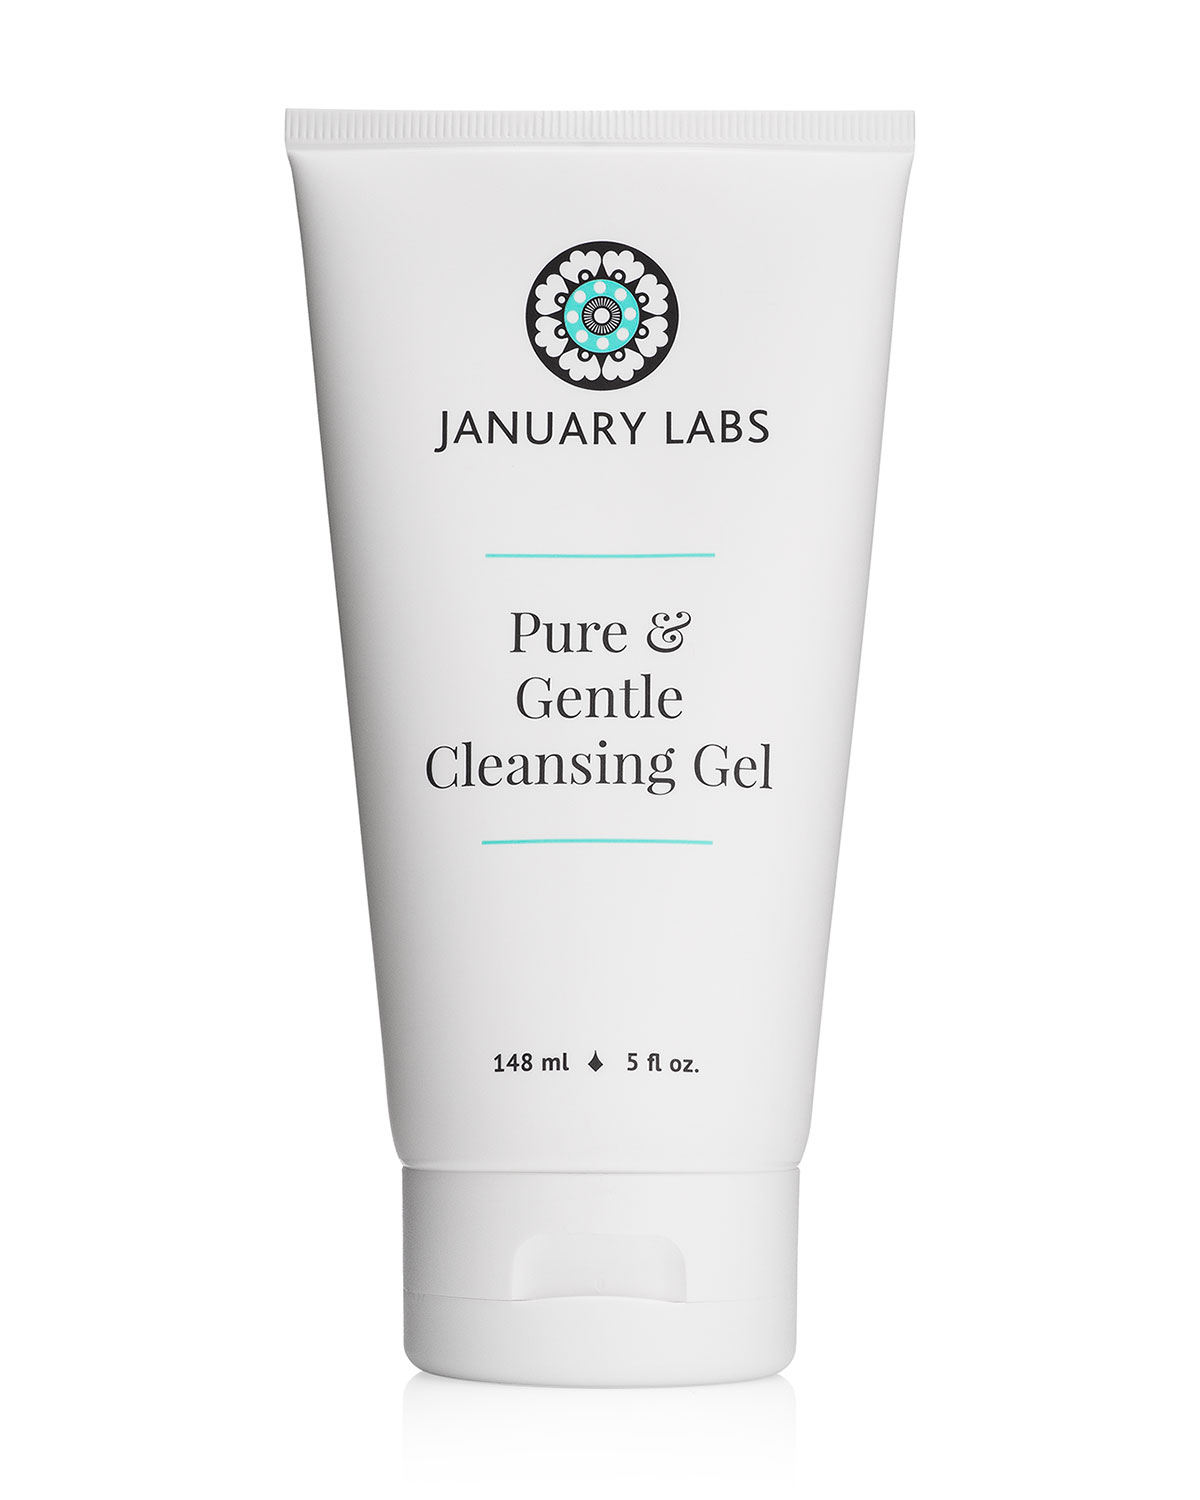 5 oz. Pure and Gentle Cleansing Gel